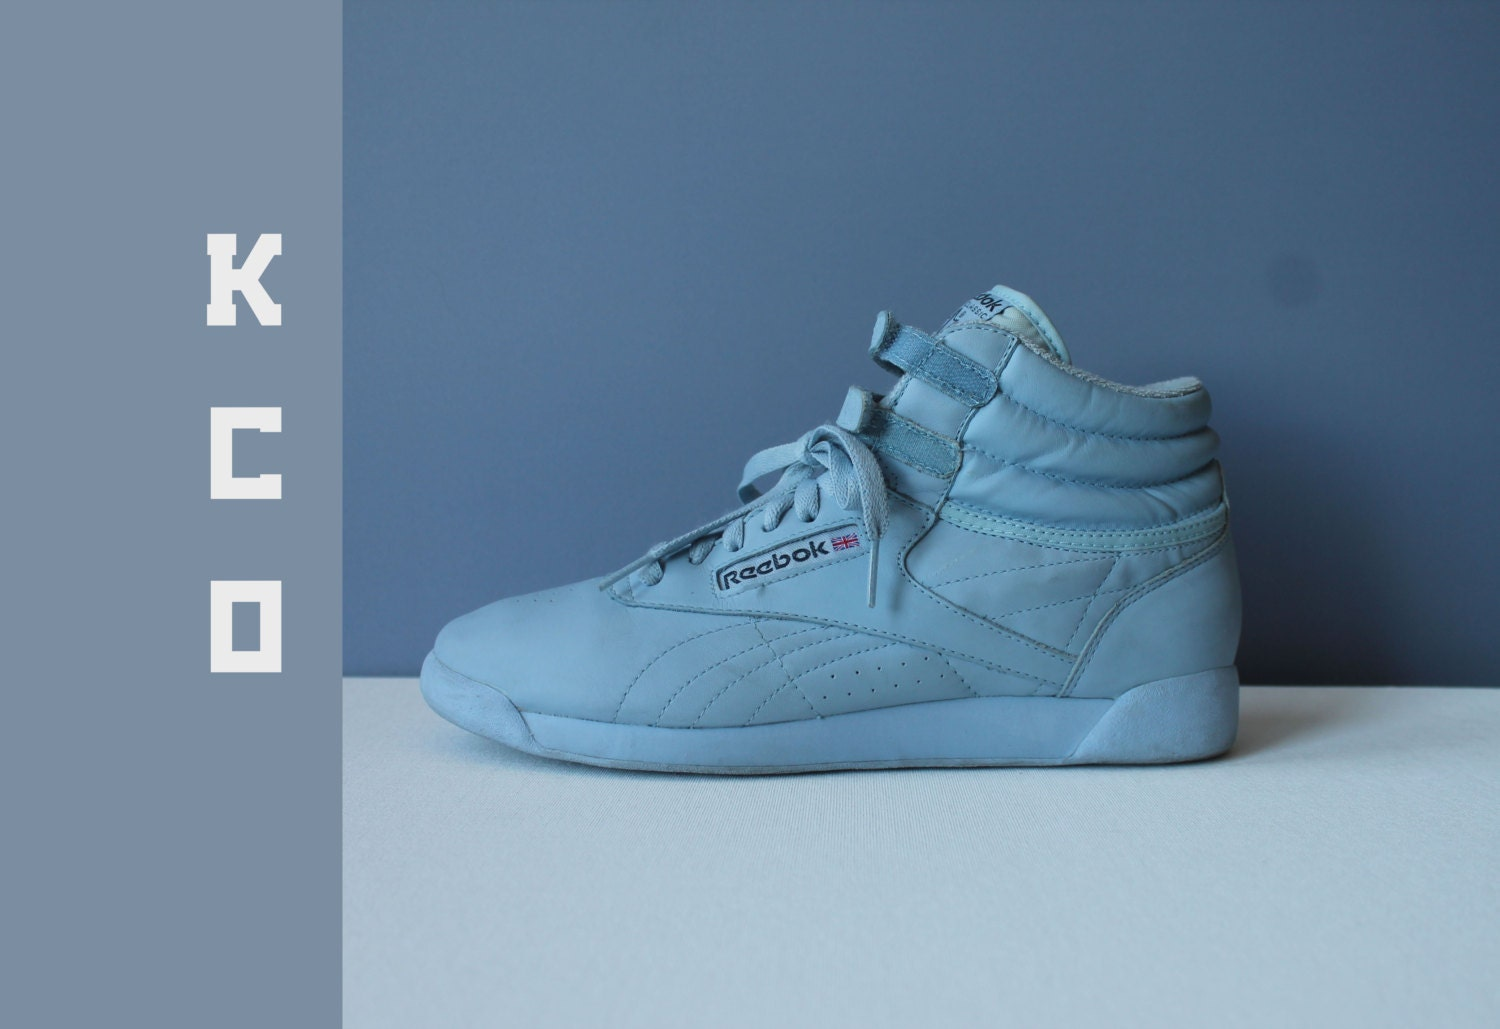 90 s shoes reebok high tops tennis shoes light blue by